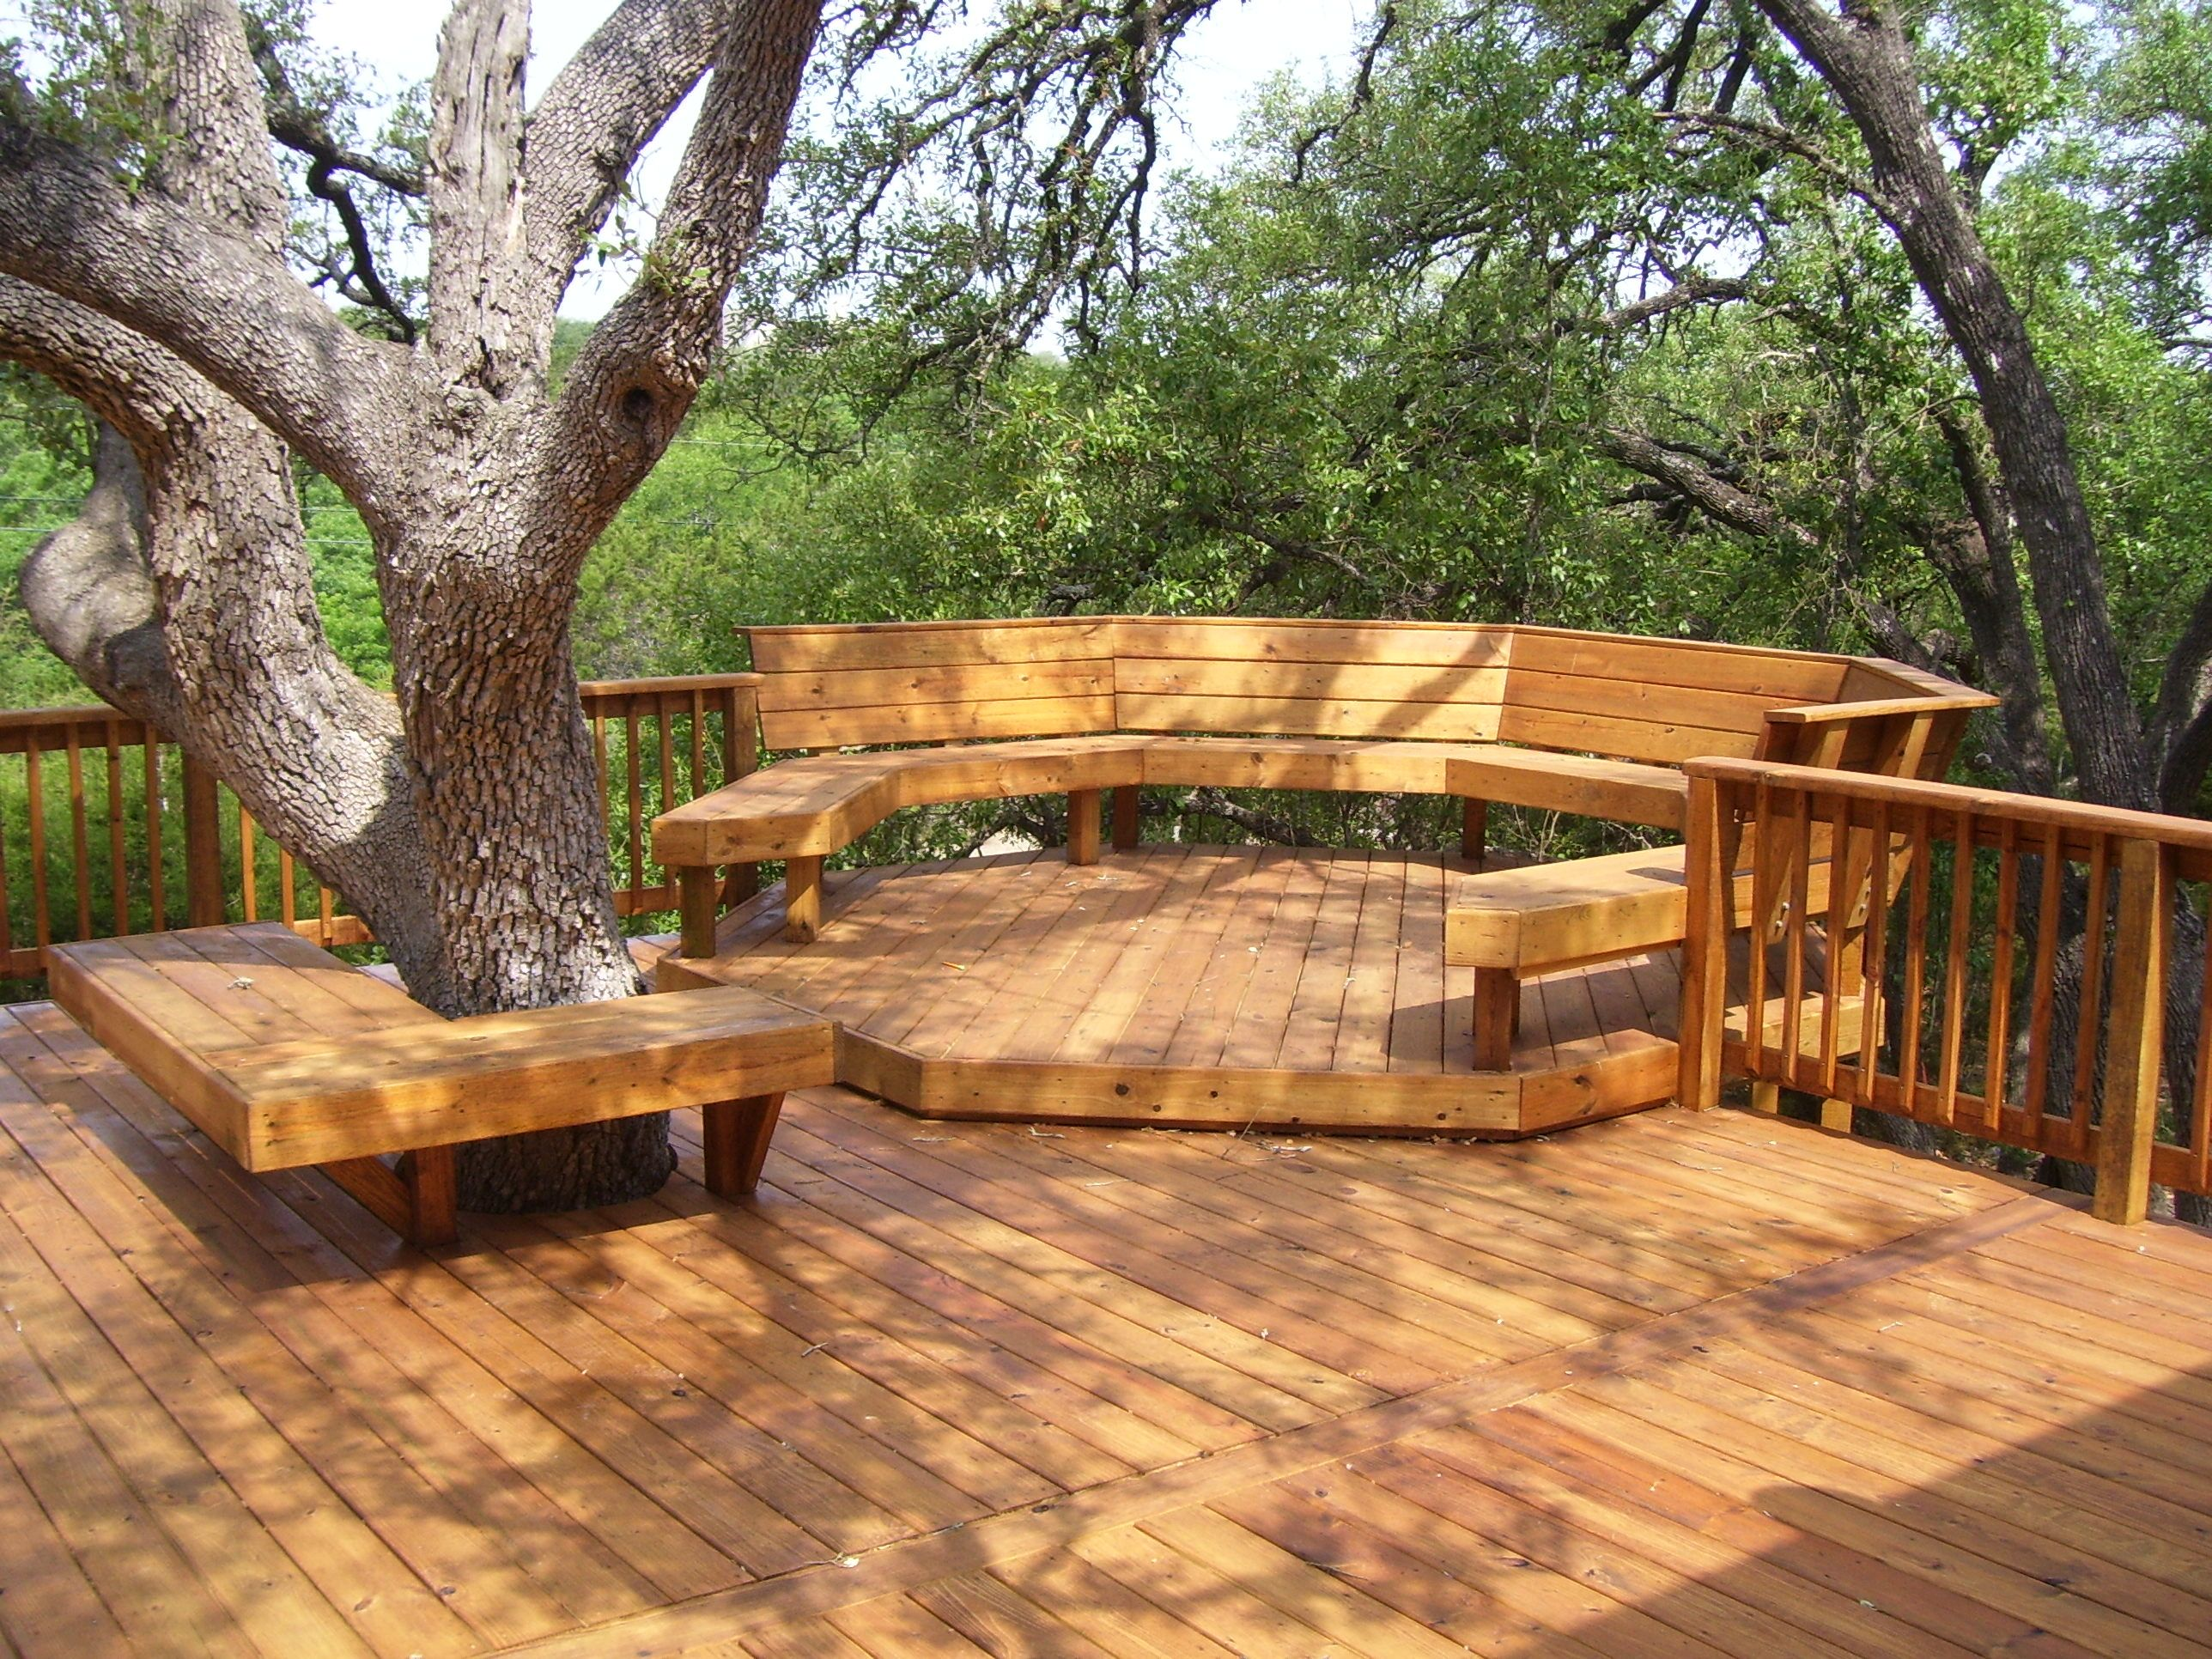 garden bench wooden sentinel pub patio itm westwood brn picnic round woodpicnictable seater furniture table